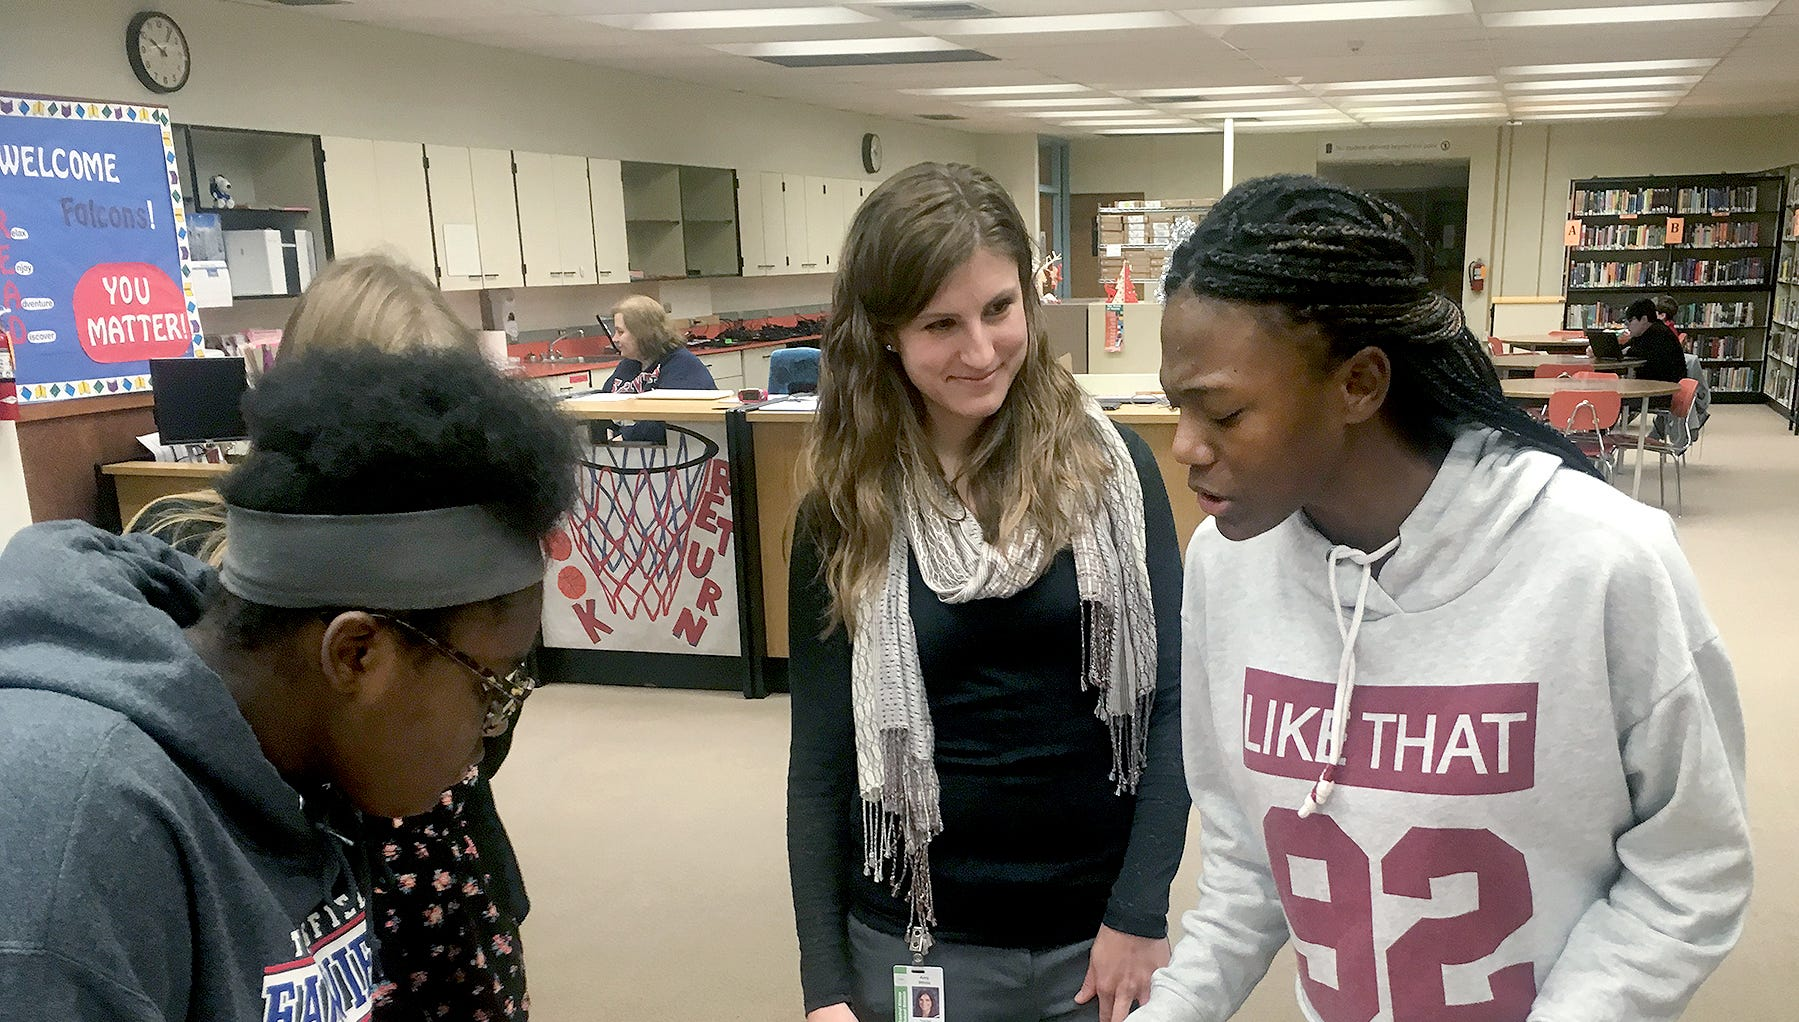 Fairview Middle School student N'Dya Hudson explains to her teacher Amy White the images in her artwork for a project in White's U.S. History class, focused on the history of racial discrimination. Listening is her fellow student Kaleah Riley.